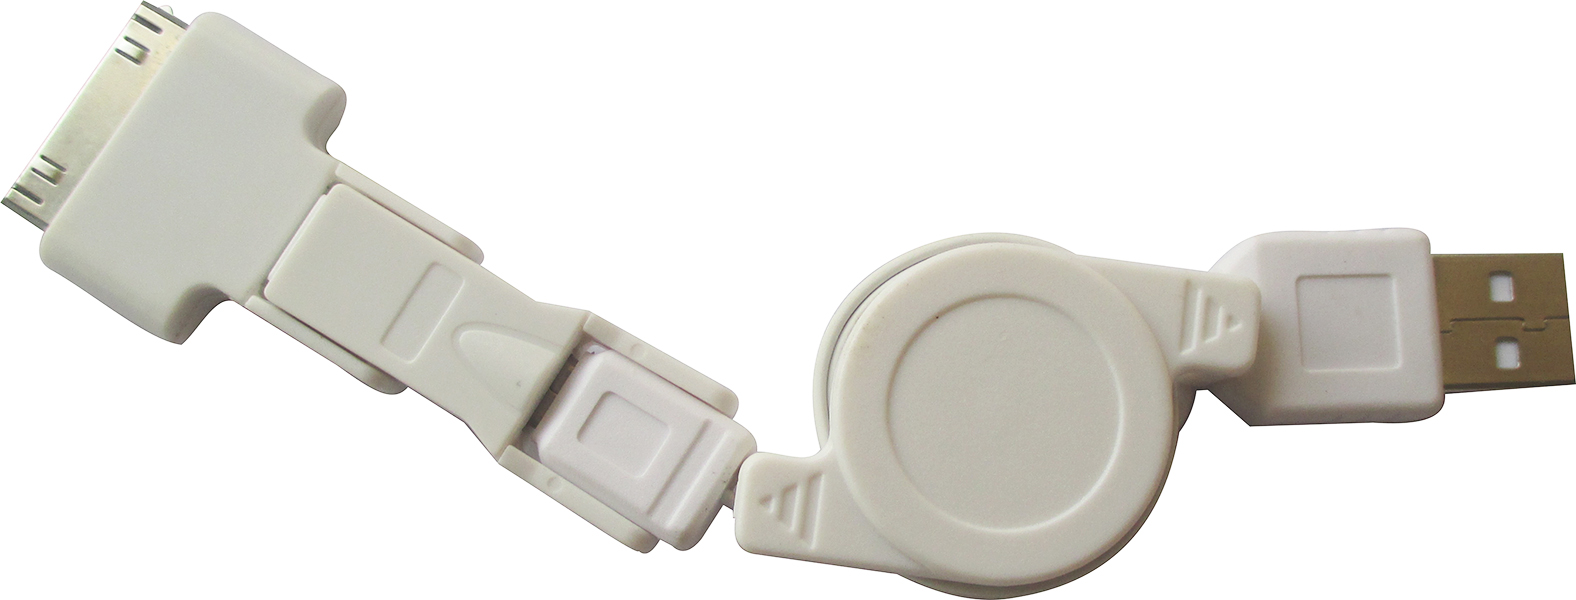 Kabel 3 In 1 For Ipod Epro